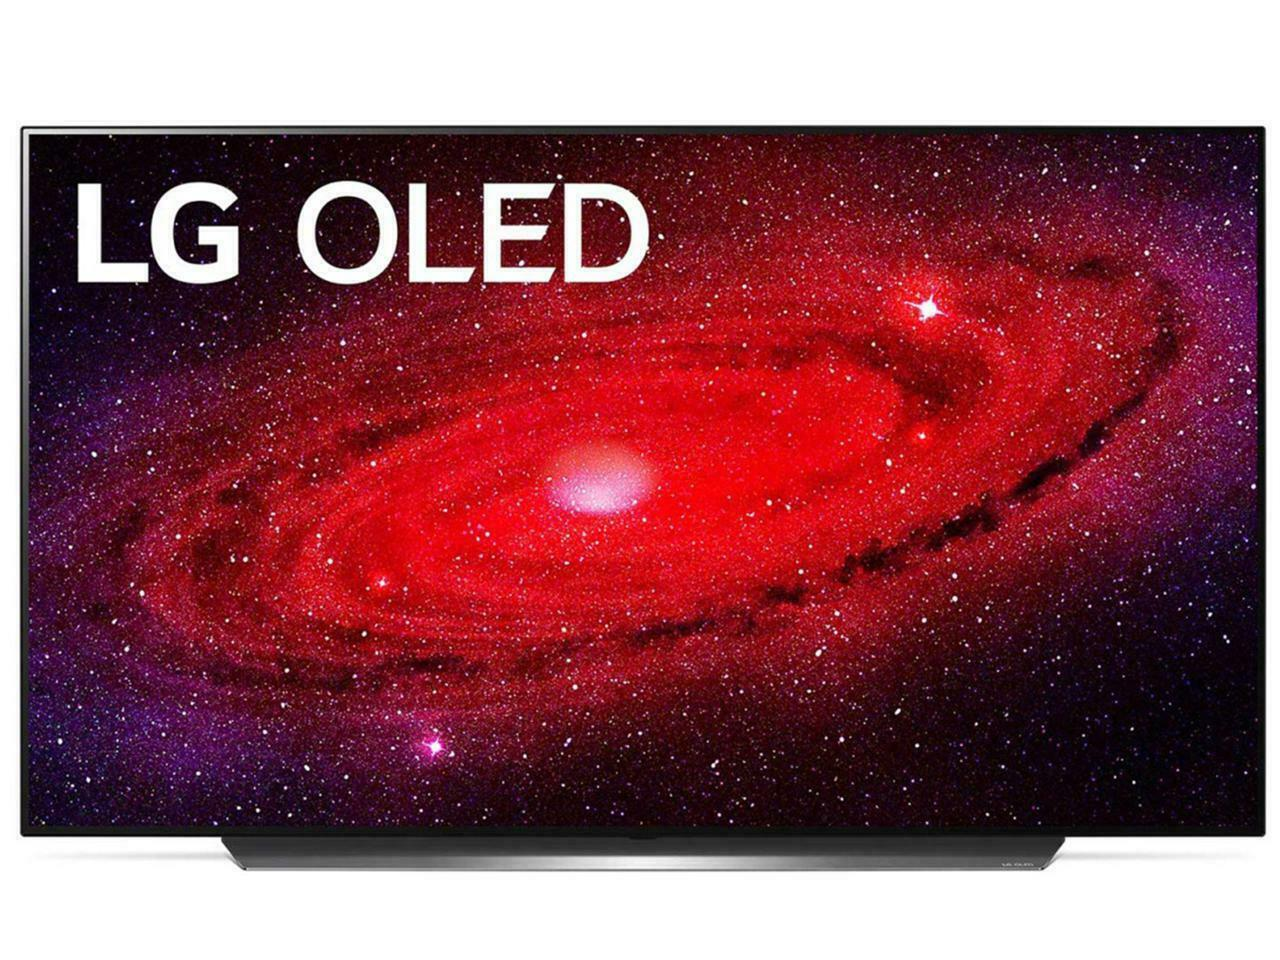 Television LG Electronics 77 inch 2160p 4K UHD Smart OLED TV Ai Alexa Built-in. Available Now for 4575.00